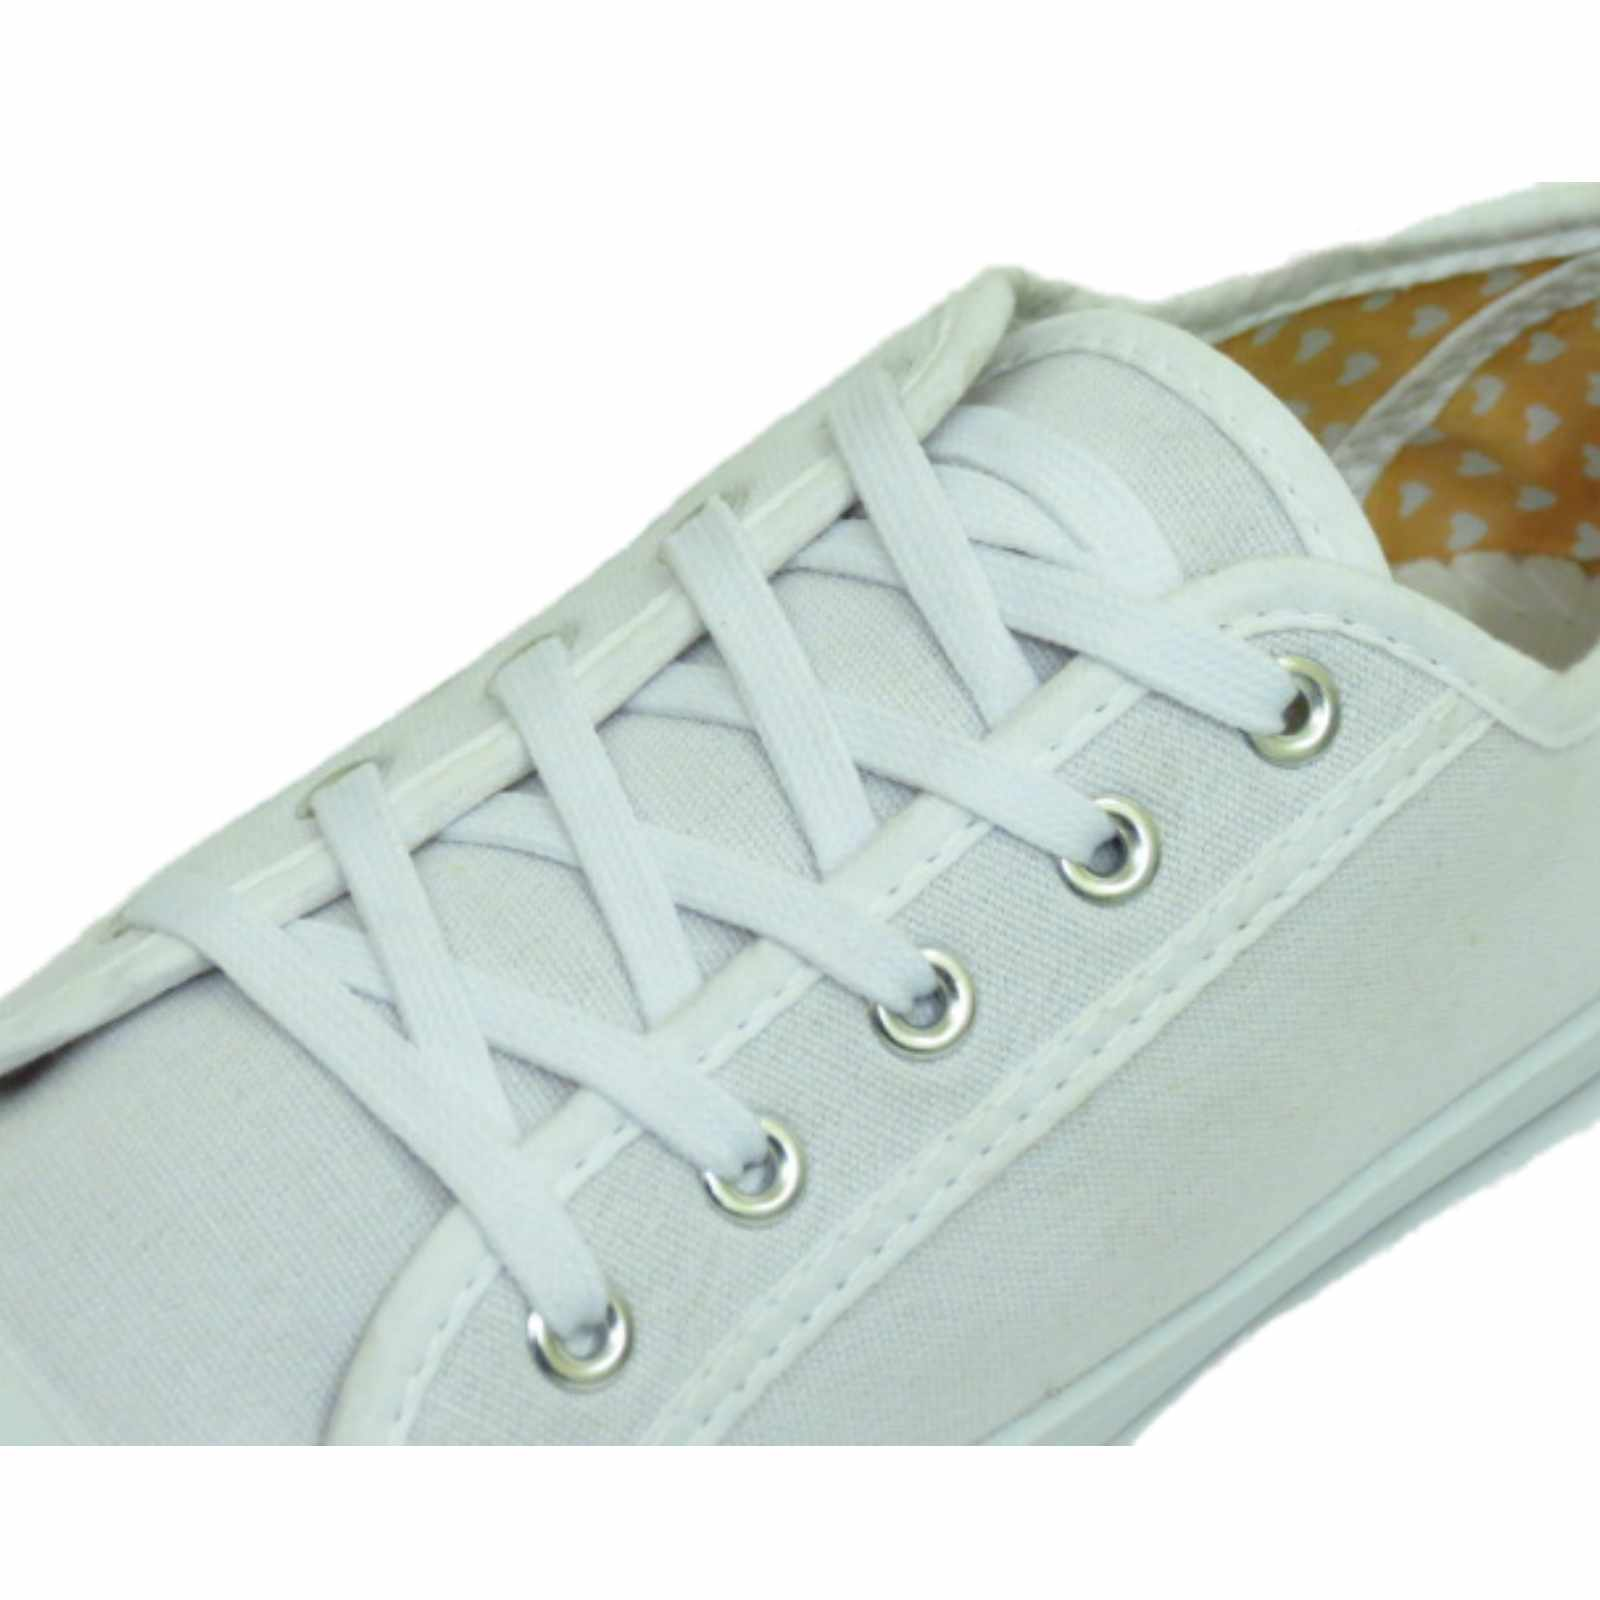 92f595d980b Sentinel LADIES WHITE CANVAS FLAT LACE-UP TRAINER PLIMSOLL PUMPS CASUAL  SHOES SIZES 3-9